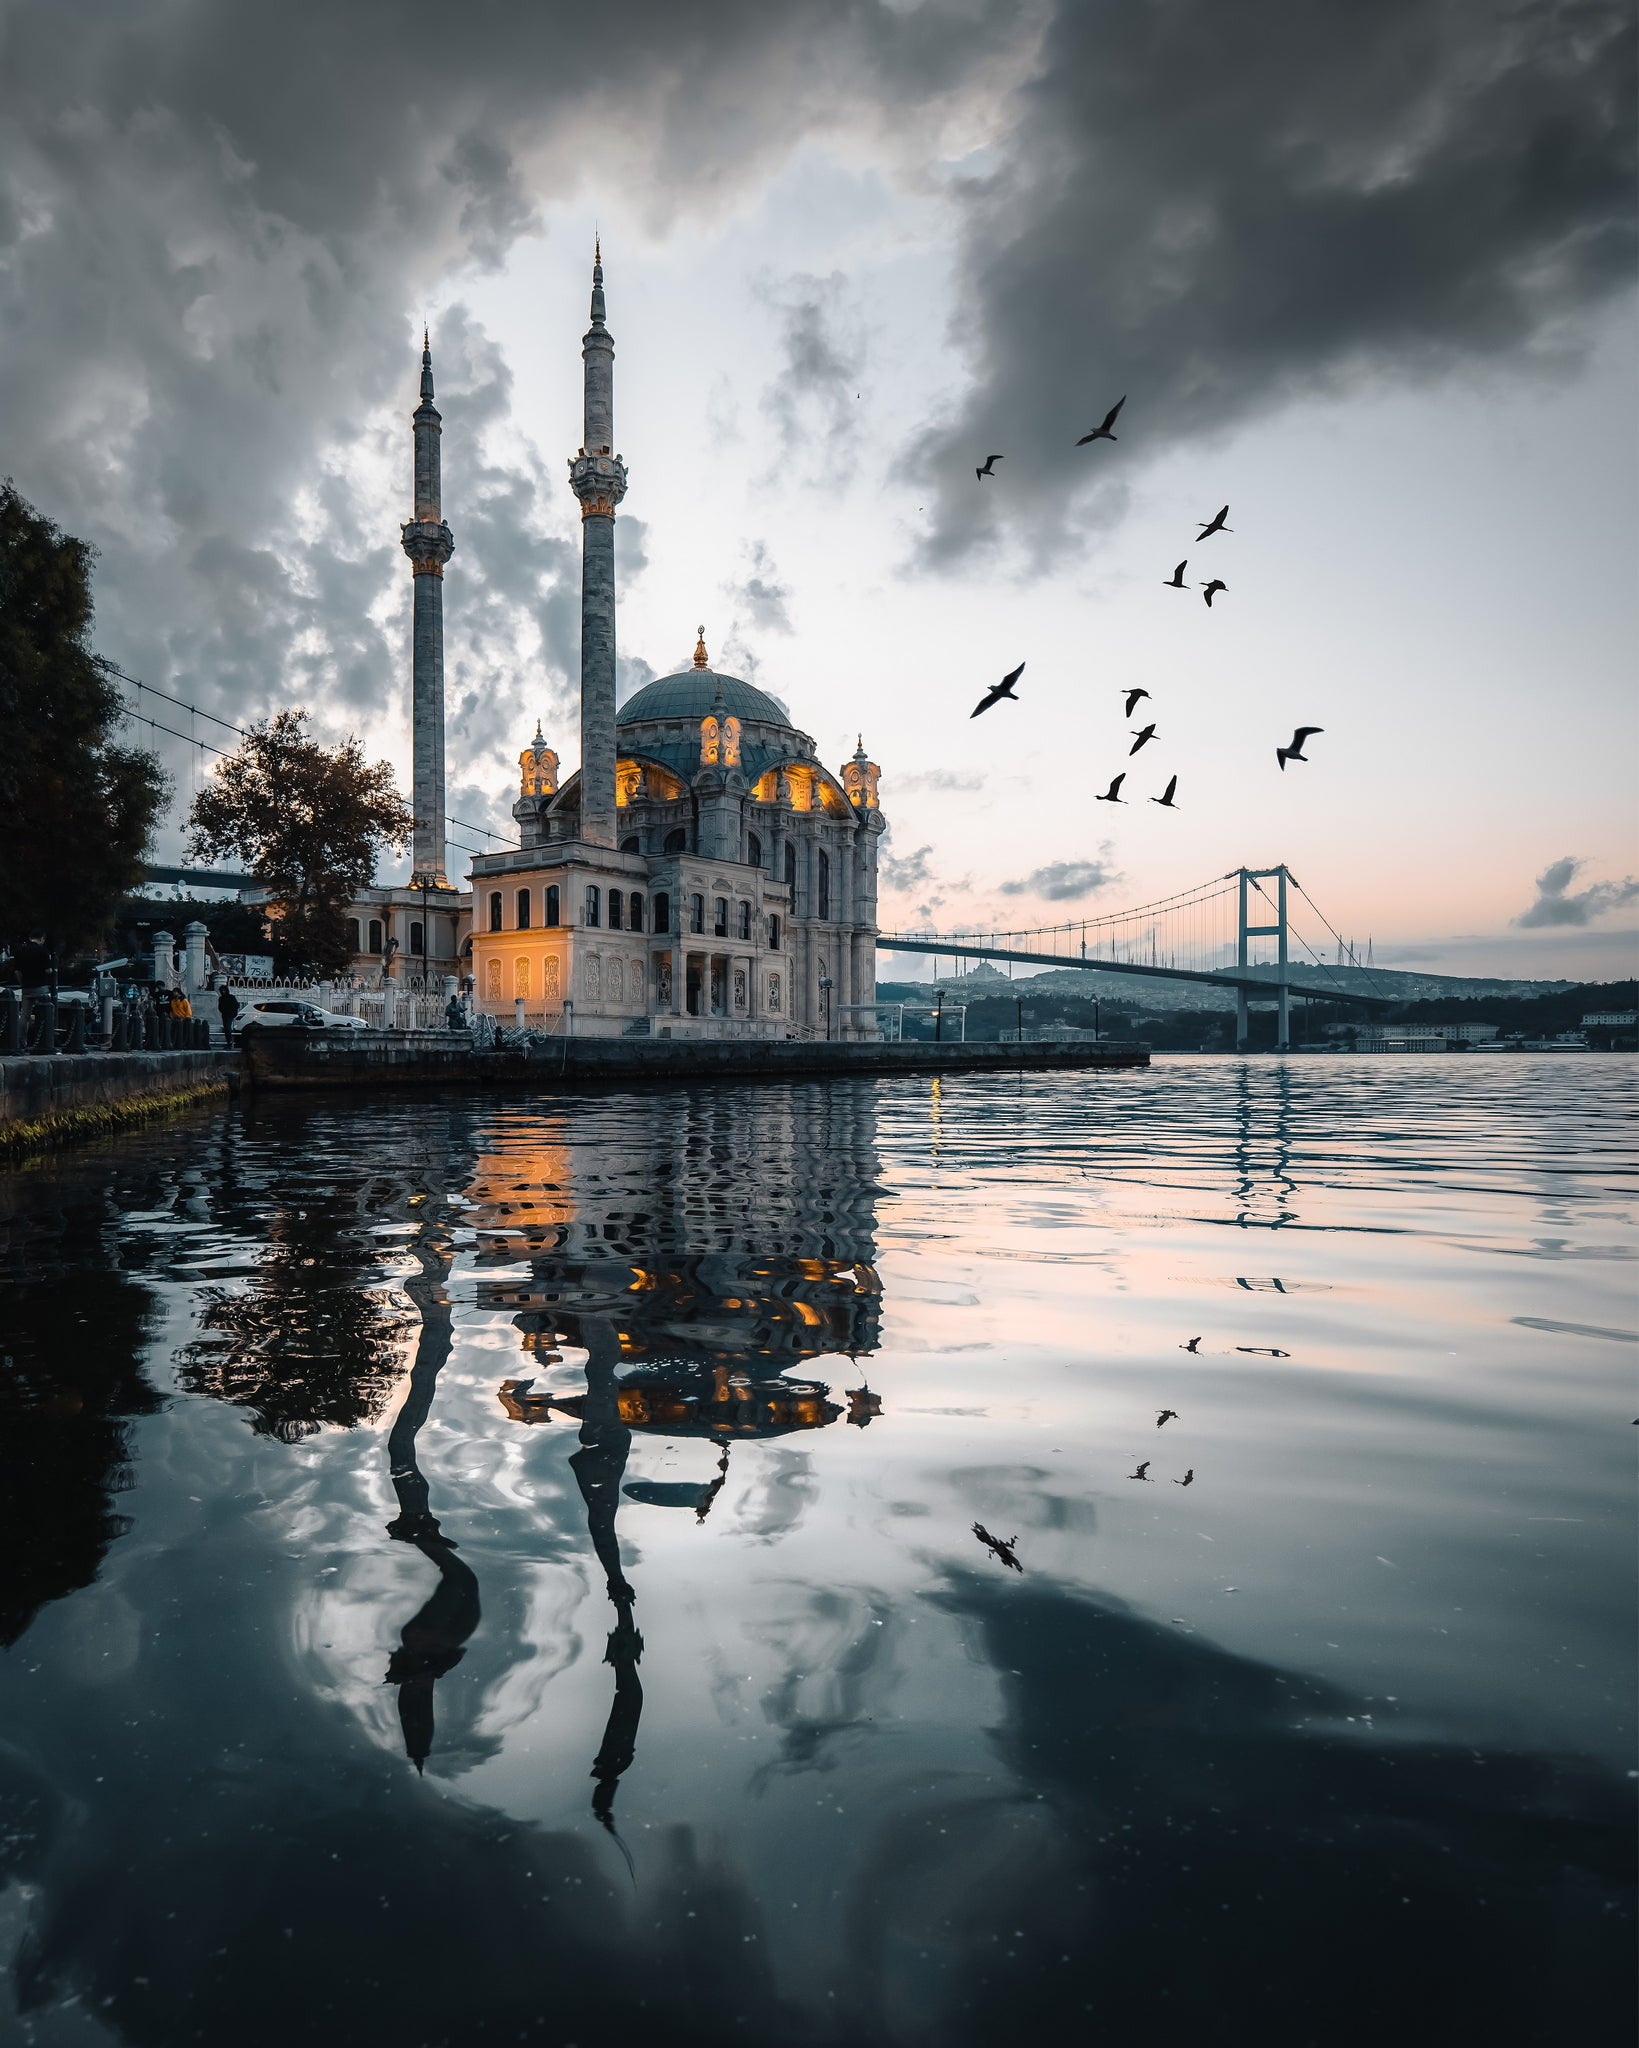 Sunrise at Ortakoy Mosque, Istanbul, Turkey.